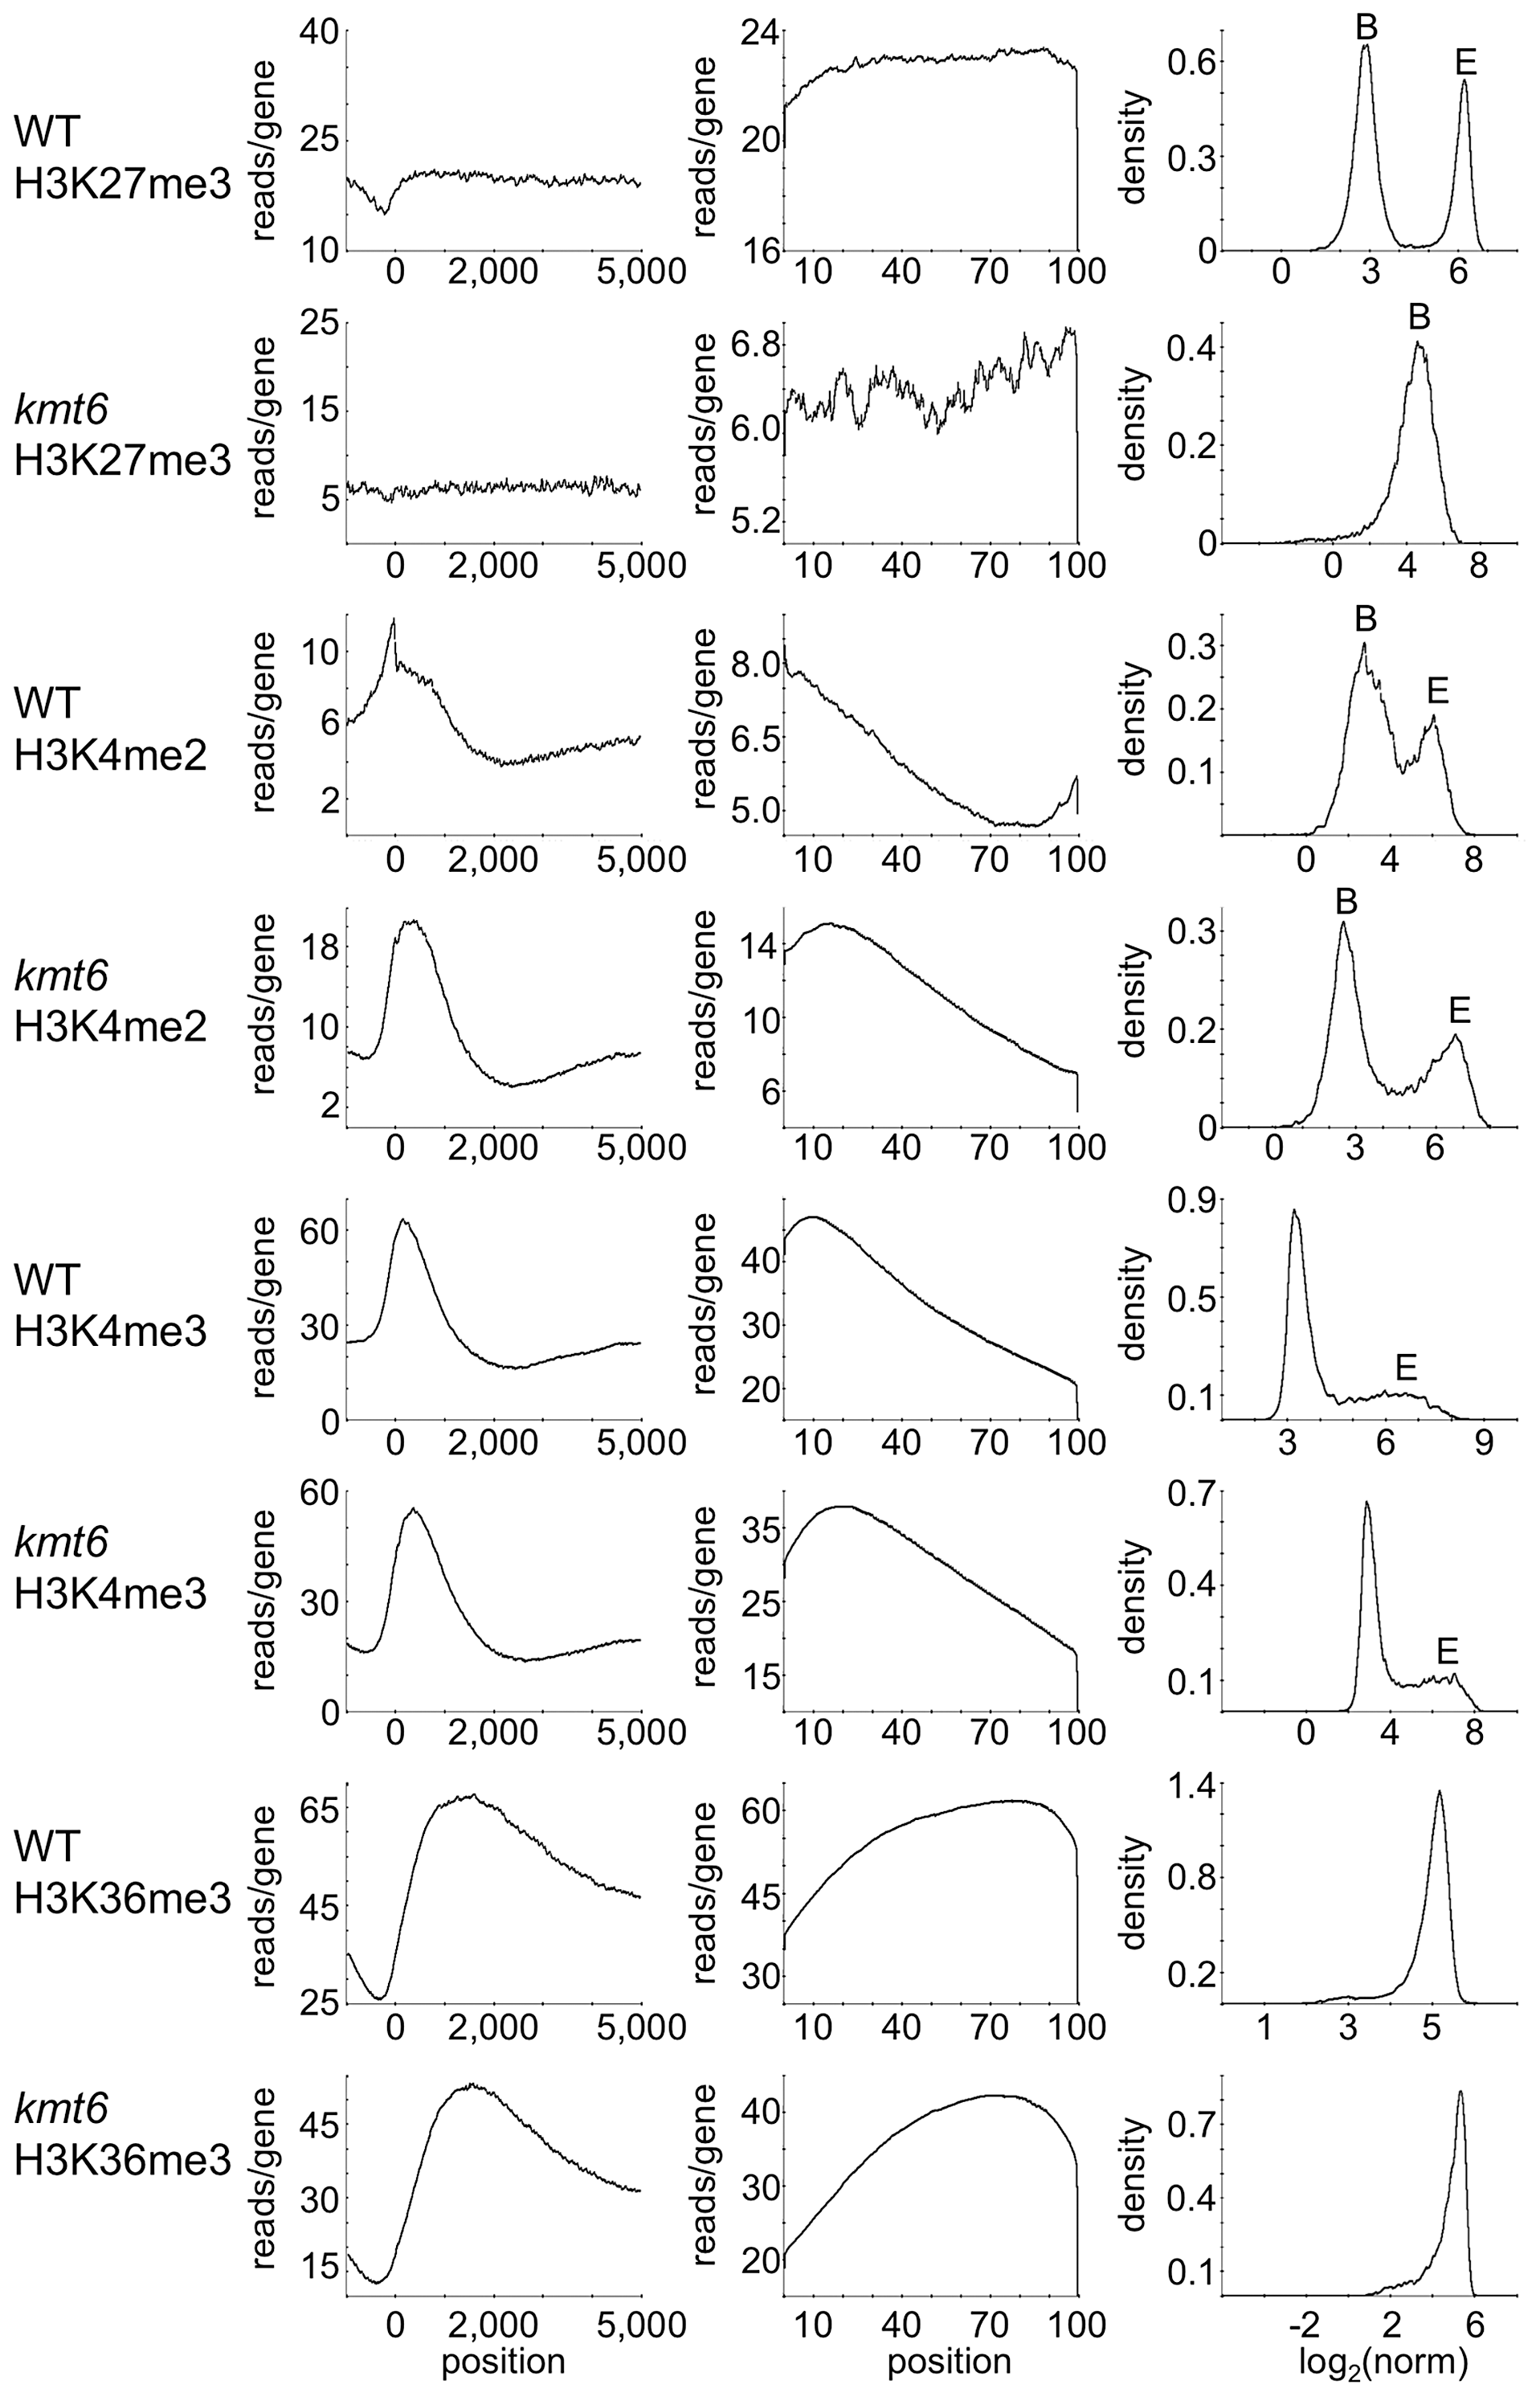 Distribution of histone modifications across the complete set of <i>F. graminearum</i> genes.